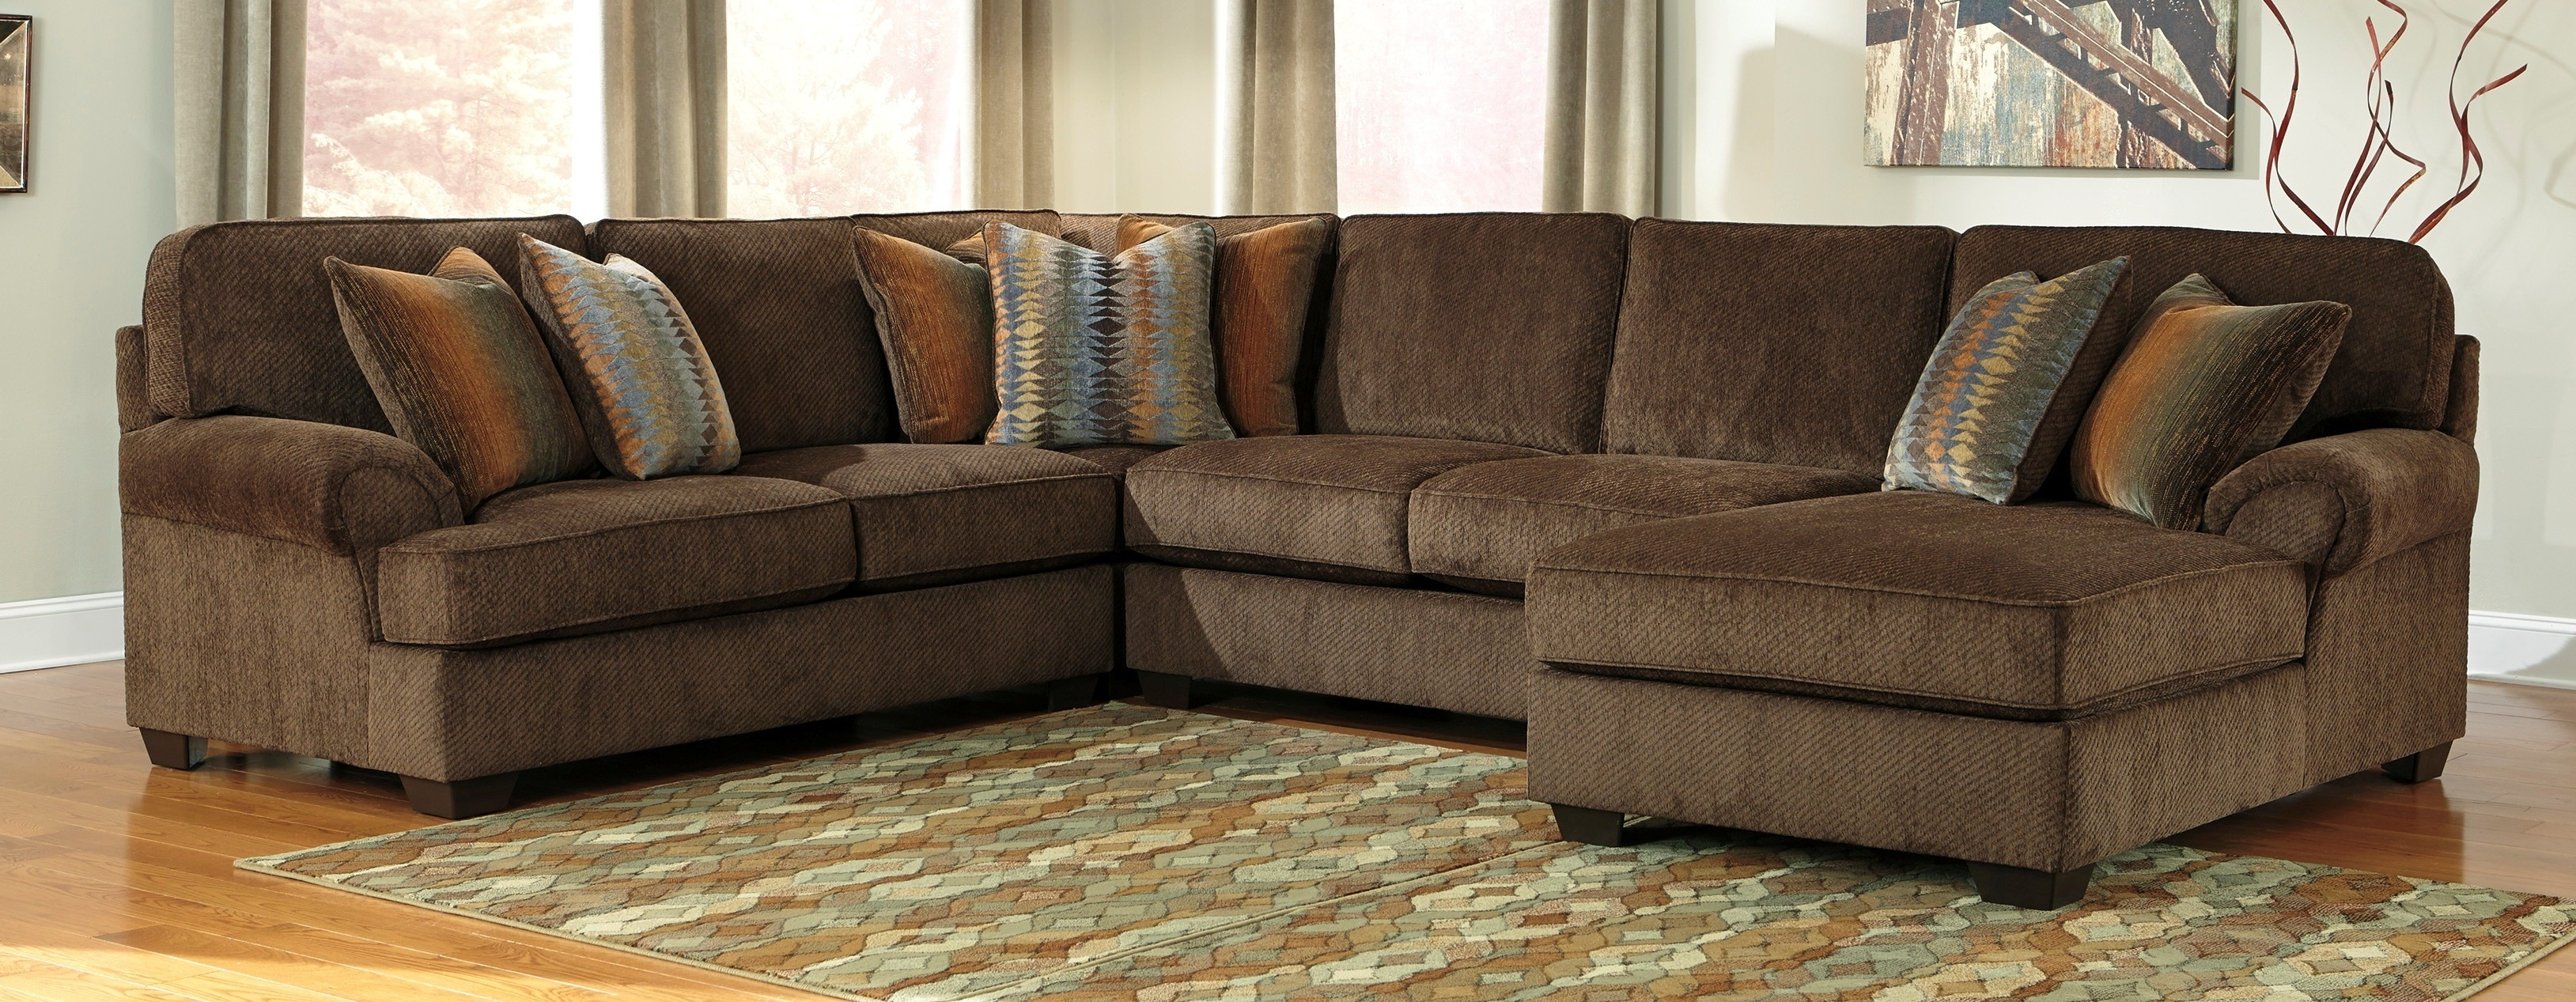 Buy Ashley Furniture 9171056 9171077 9171034 9171016 Denning With Regard To Preferred Ashley Furniture Sectionals With Chaise (View 8 of 15)